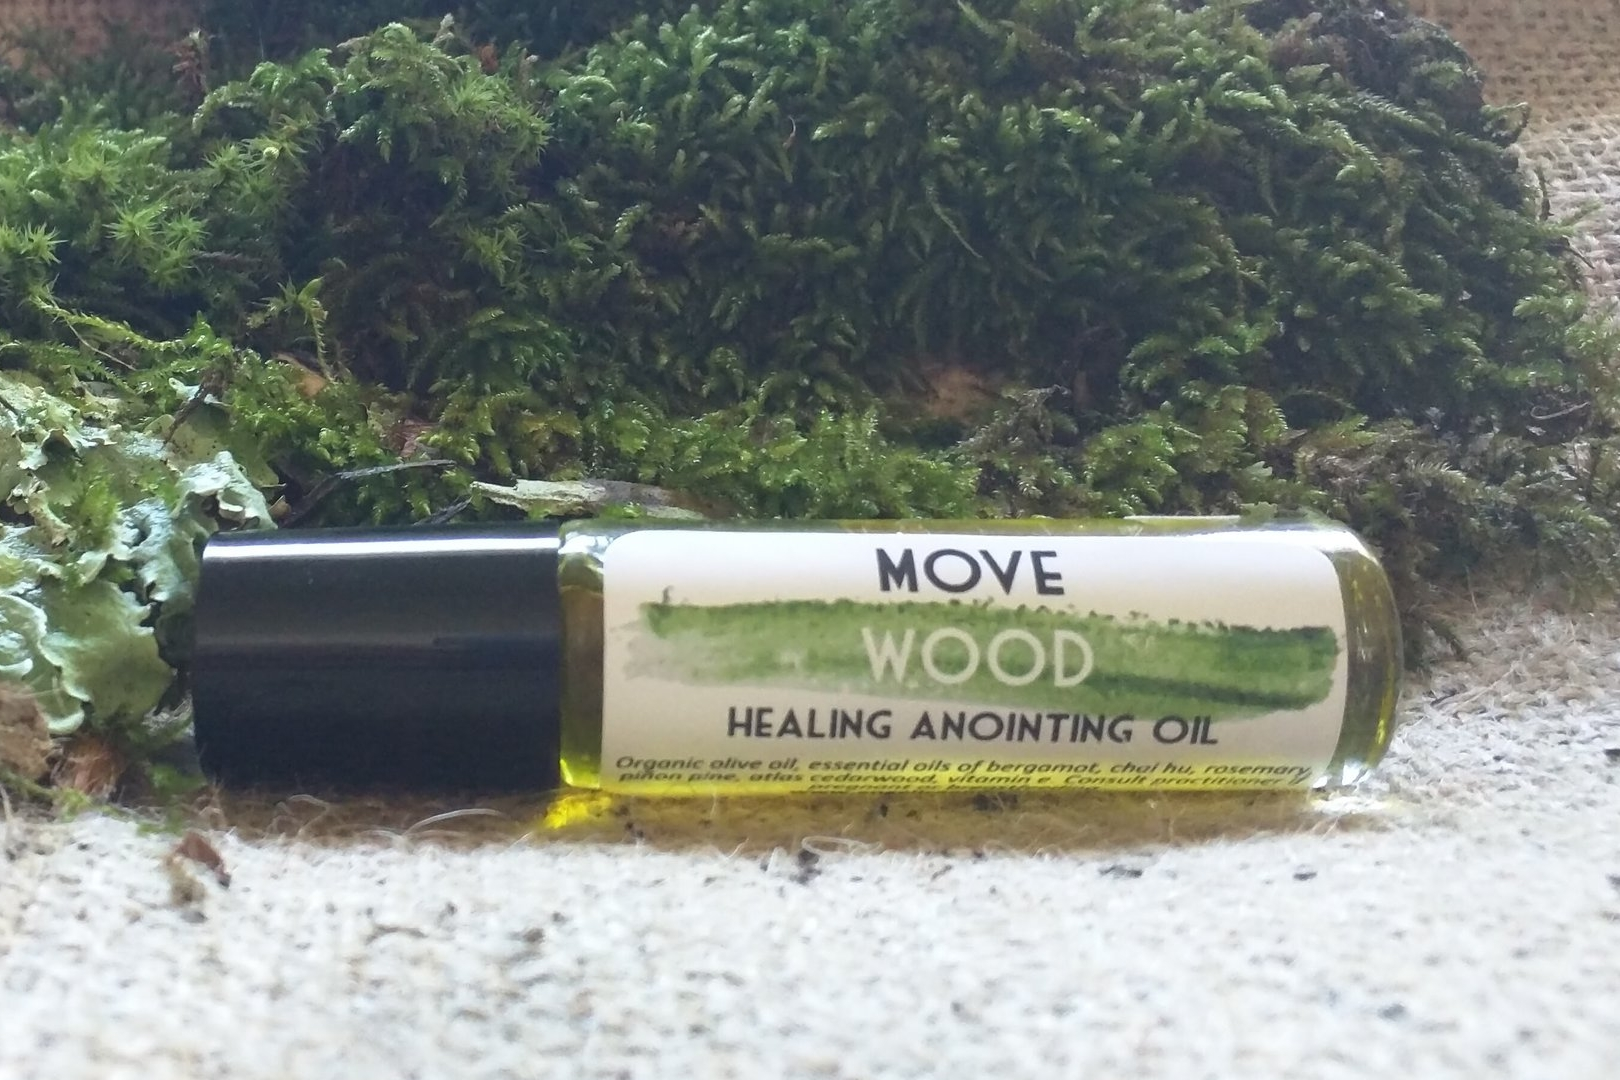 MOVE Wood Healing Anointing oil contains essential oils for relieving and releasing stuck energy and emotions.